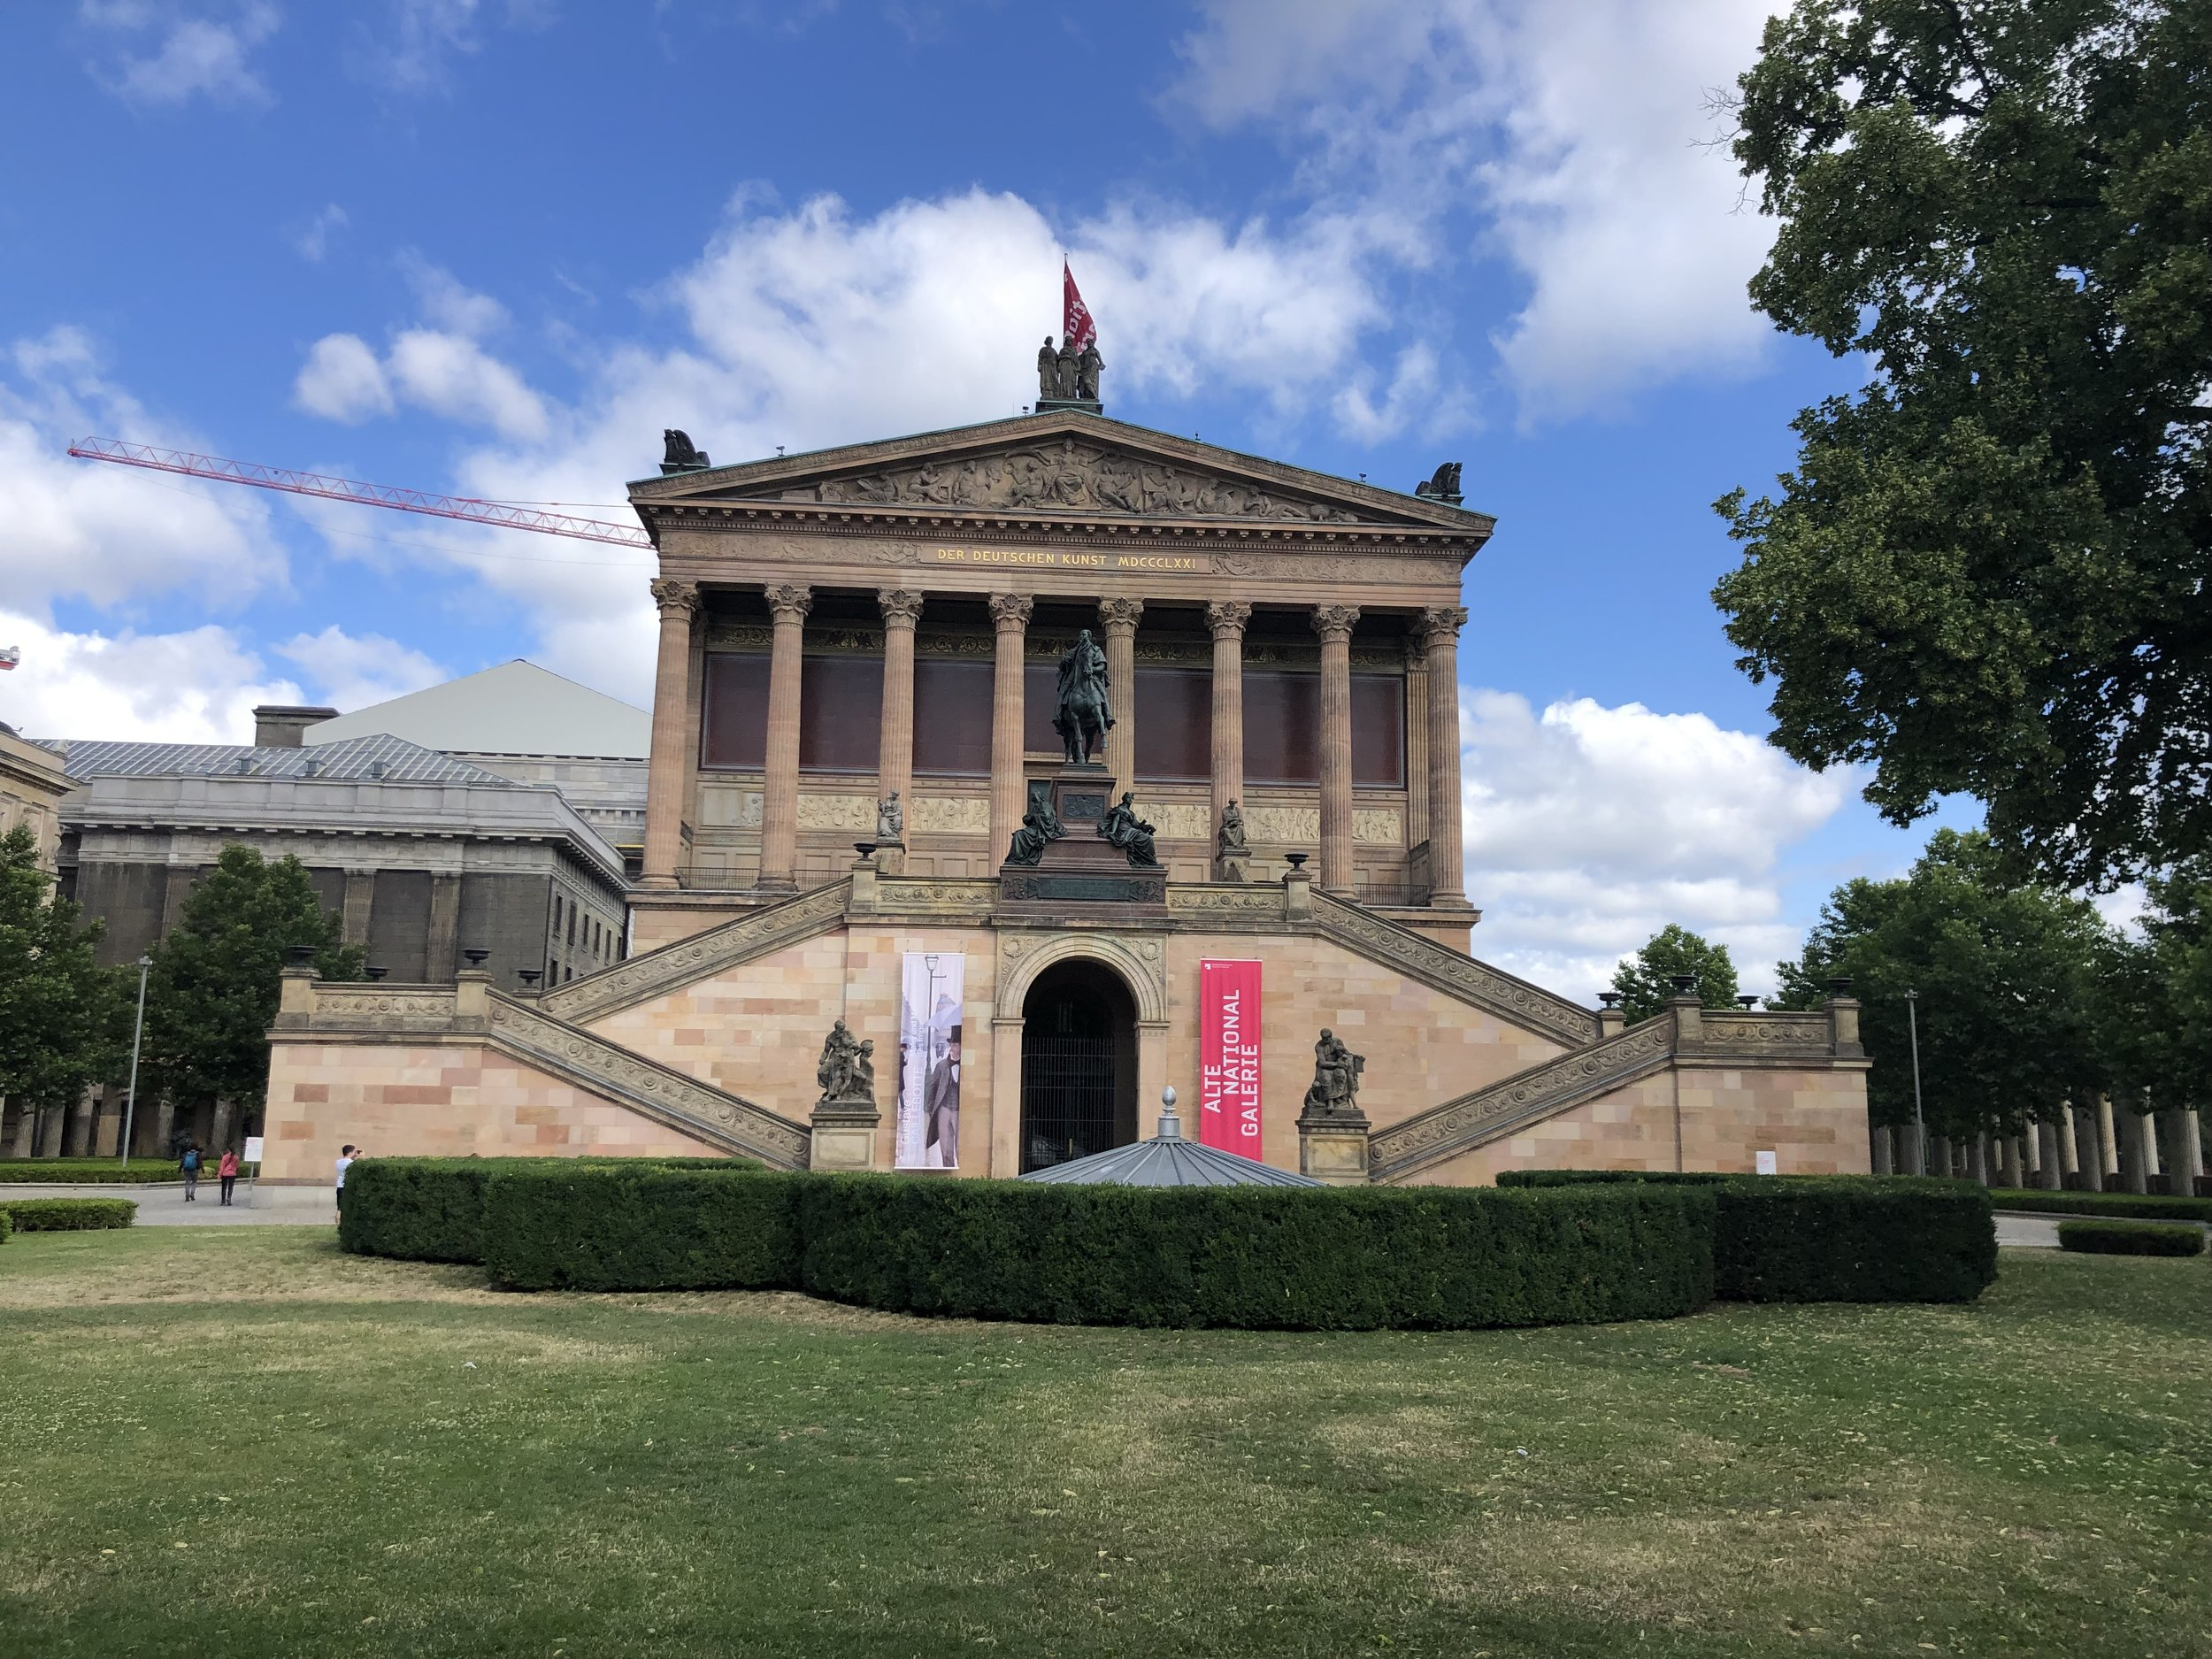 Museum Island is a major Berlin attraction. On this small tract of land are several significant museums that house artifacts of human history from around the world. The outside of the museums was almost as impressive as their contents.